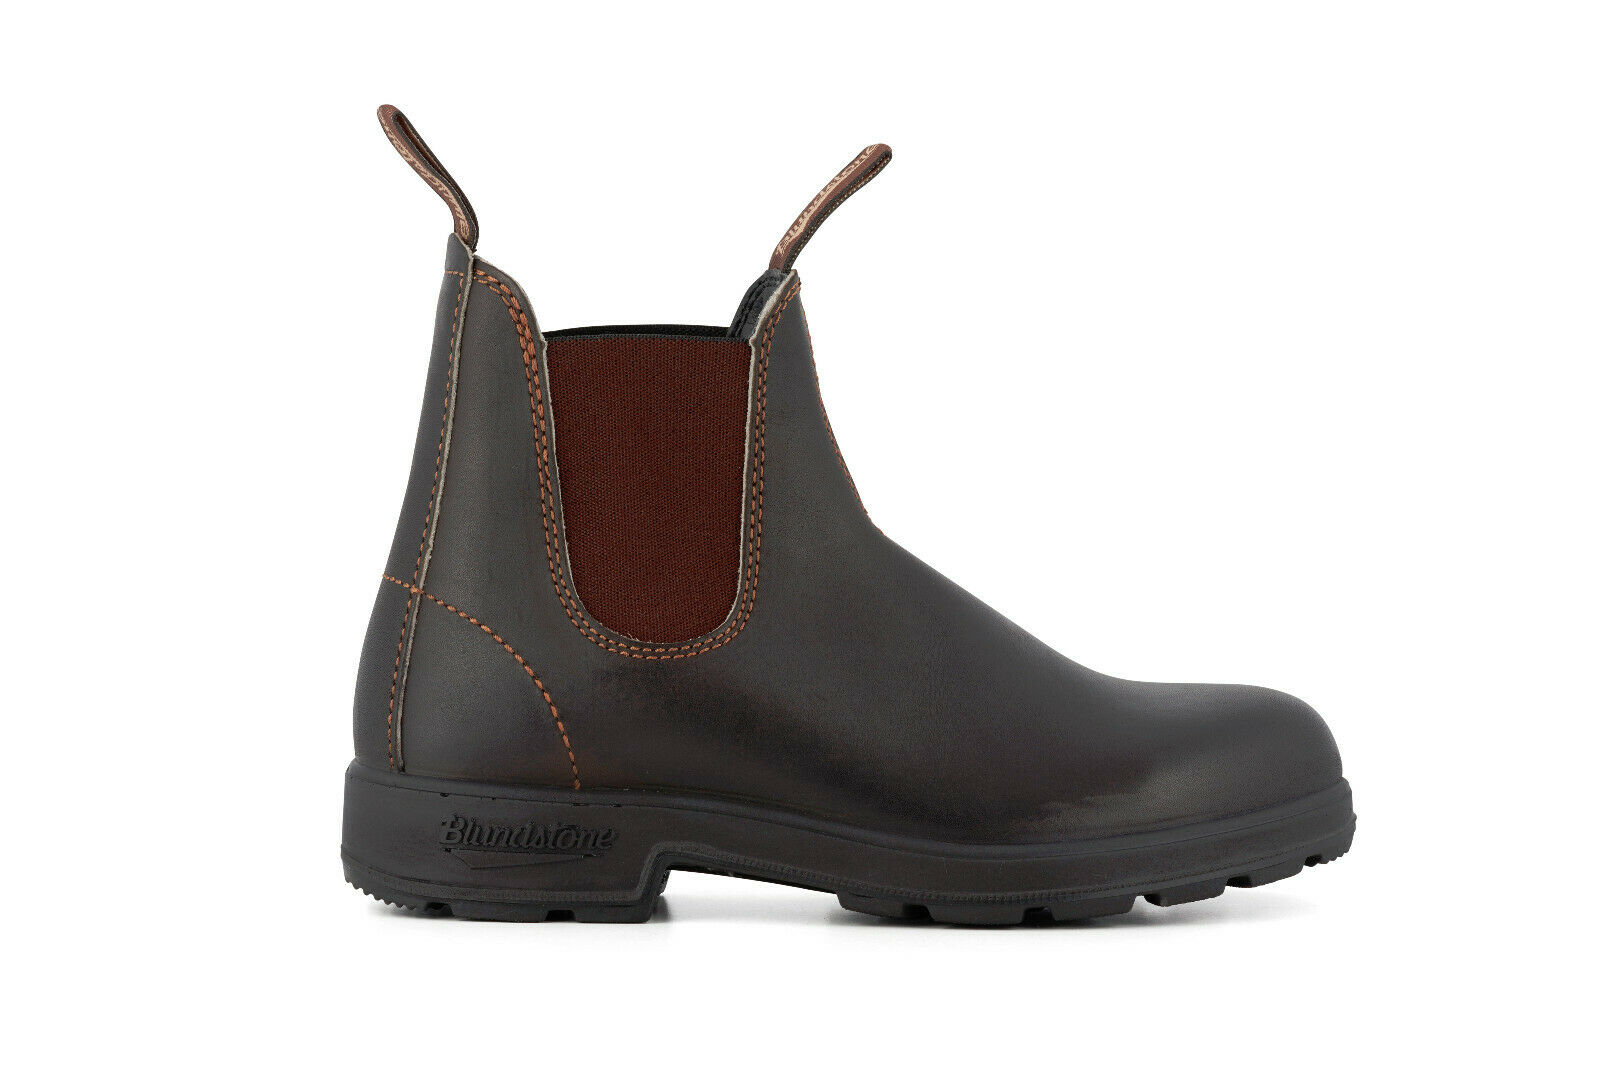 bluendstone 500 Unisex Stout Brown Leather Chelsea Ankle Boots